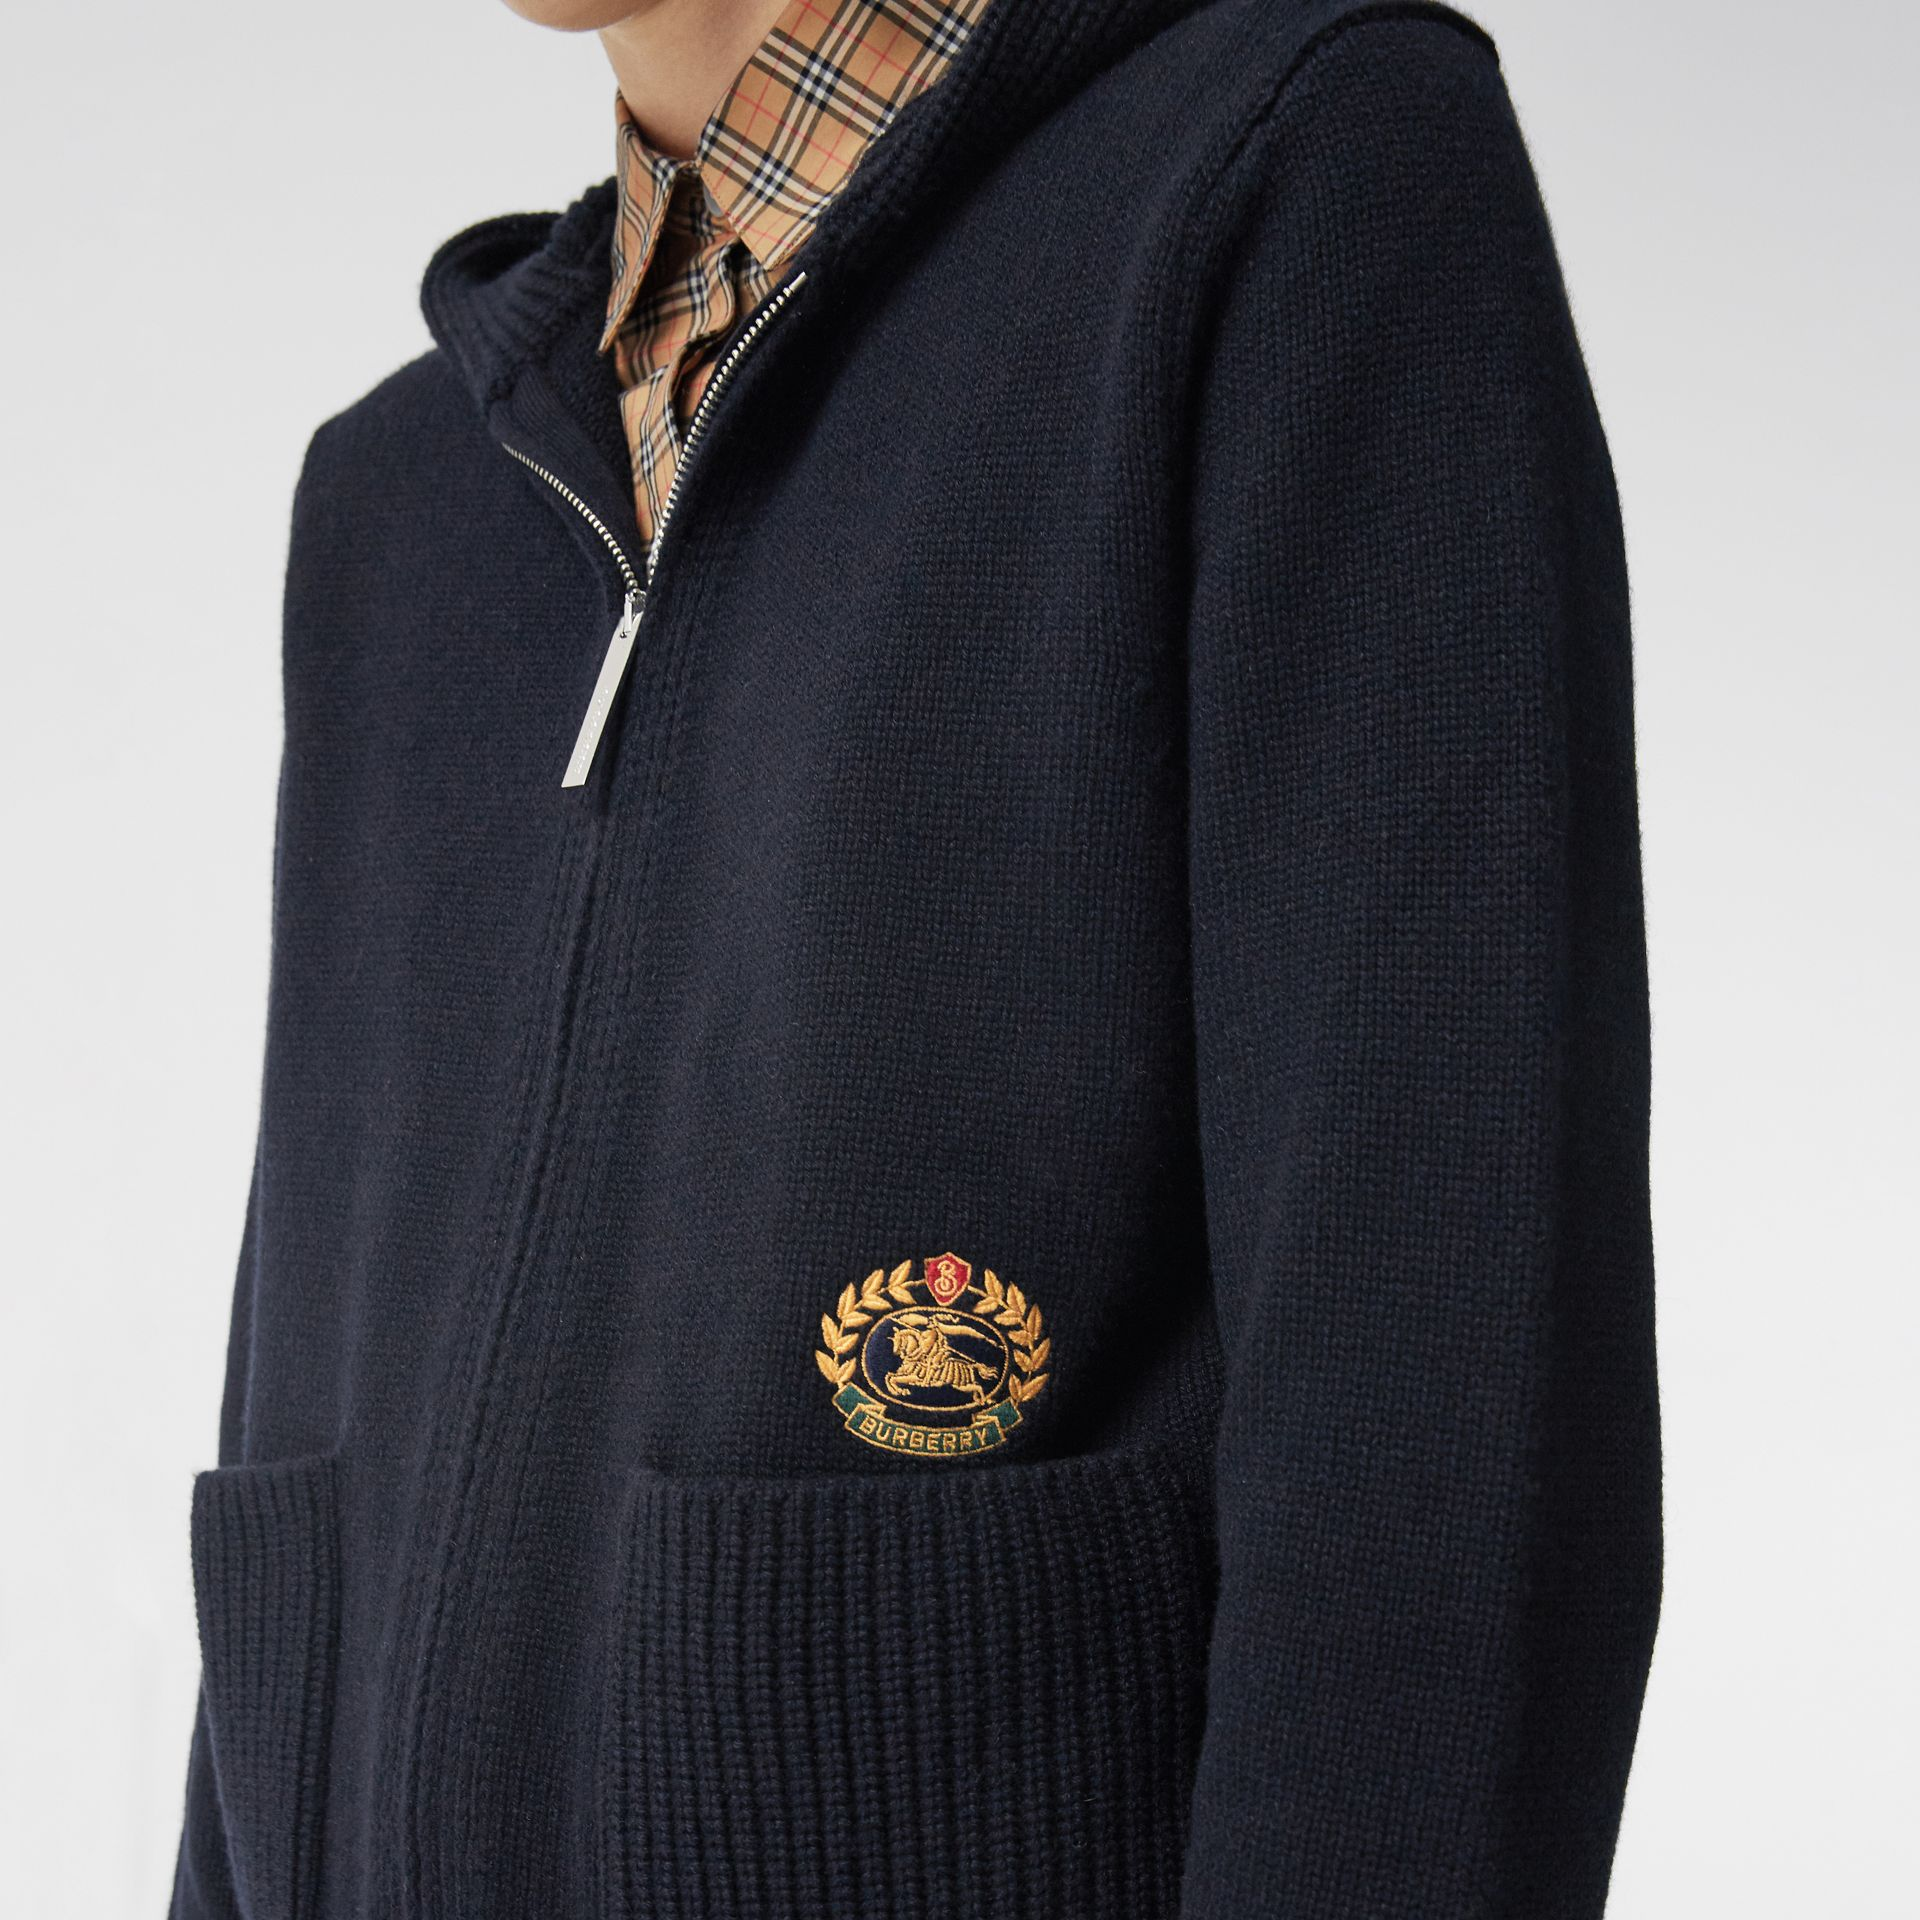 Embroidered Crest Cashmere Hooded Top in Navy - Women | Burberry Hong Kong - gallery image 1